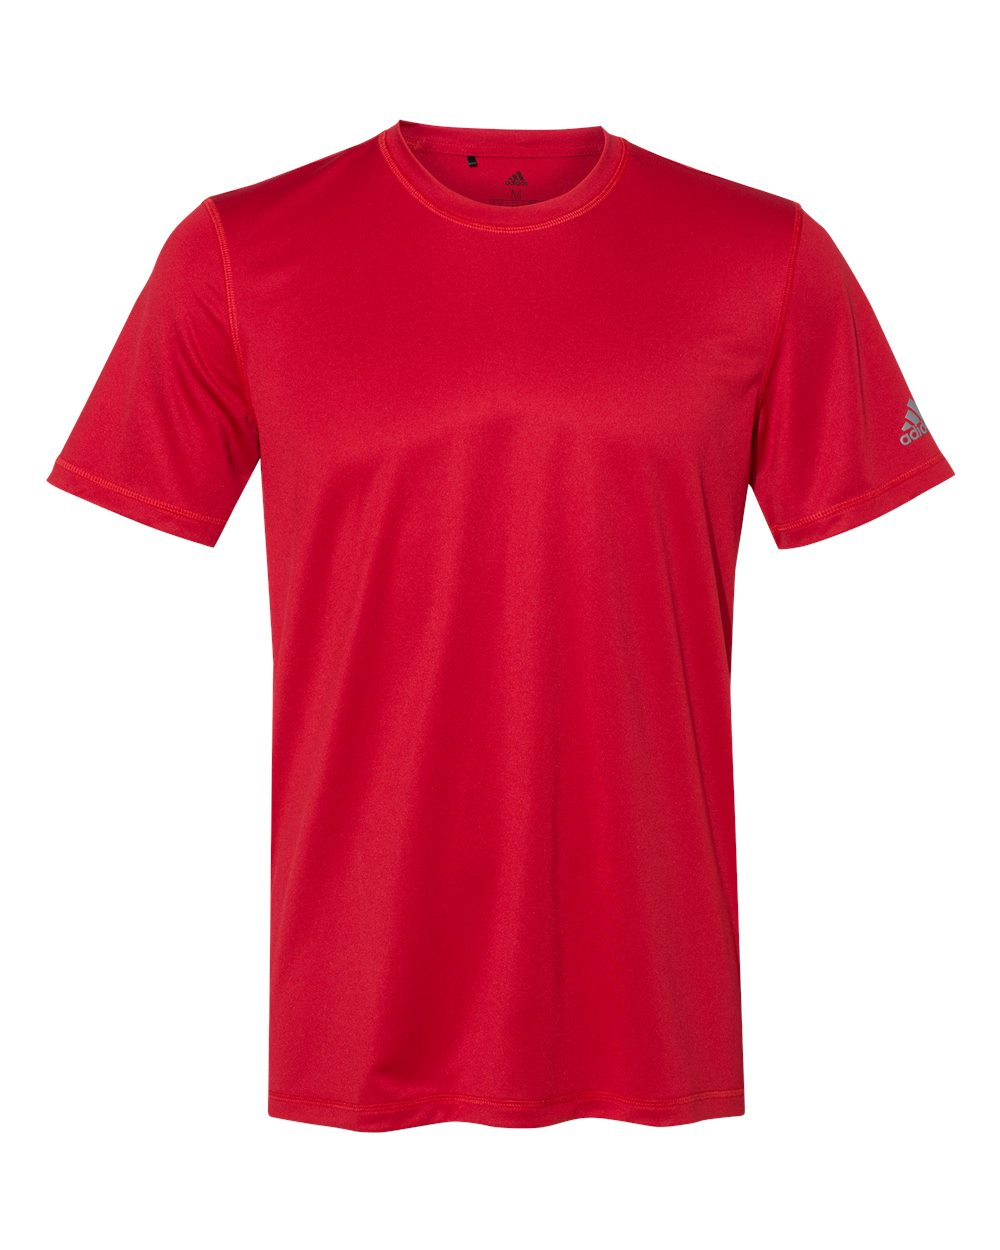 Adidas-Mens-Blank-Short-Sleeve-Polyester-Sport-T-Shirt-A376-up-to-4XL miniature 30